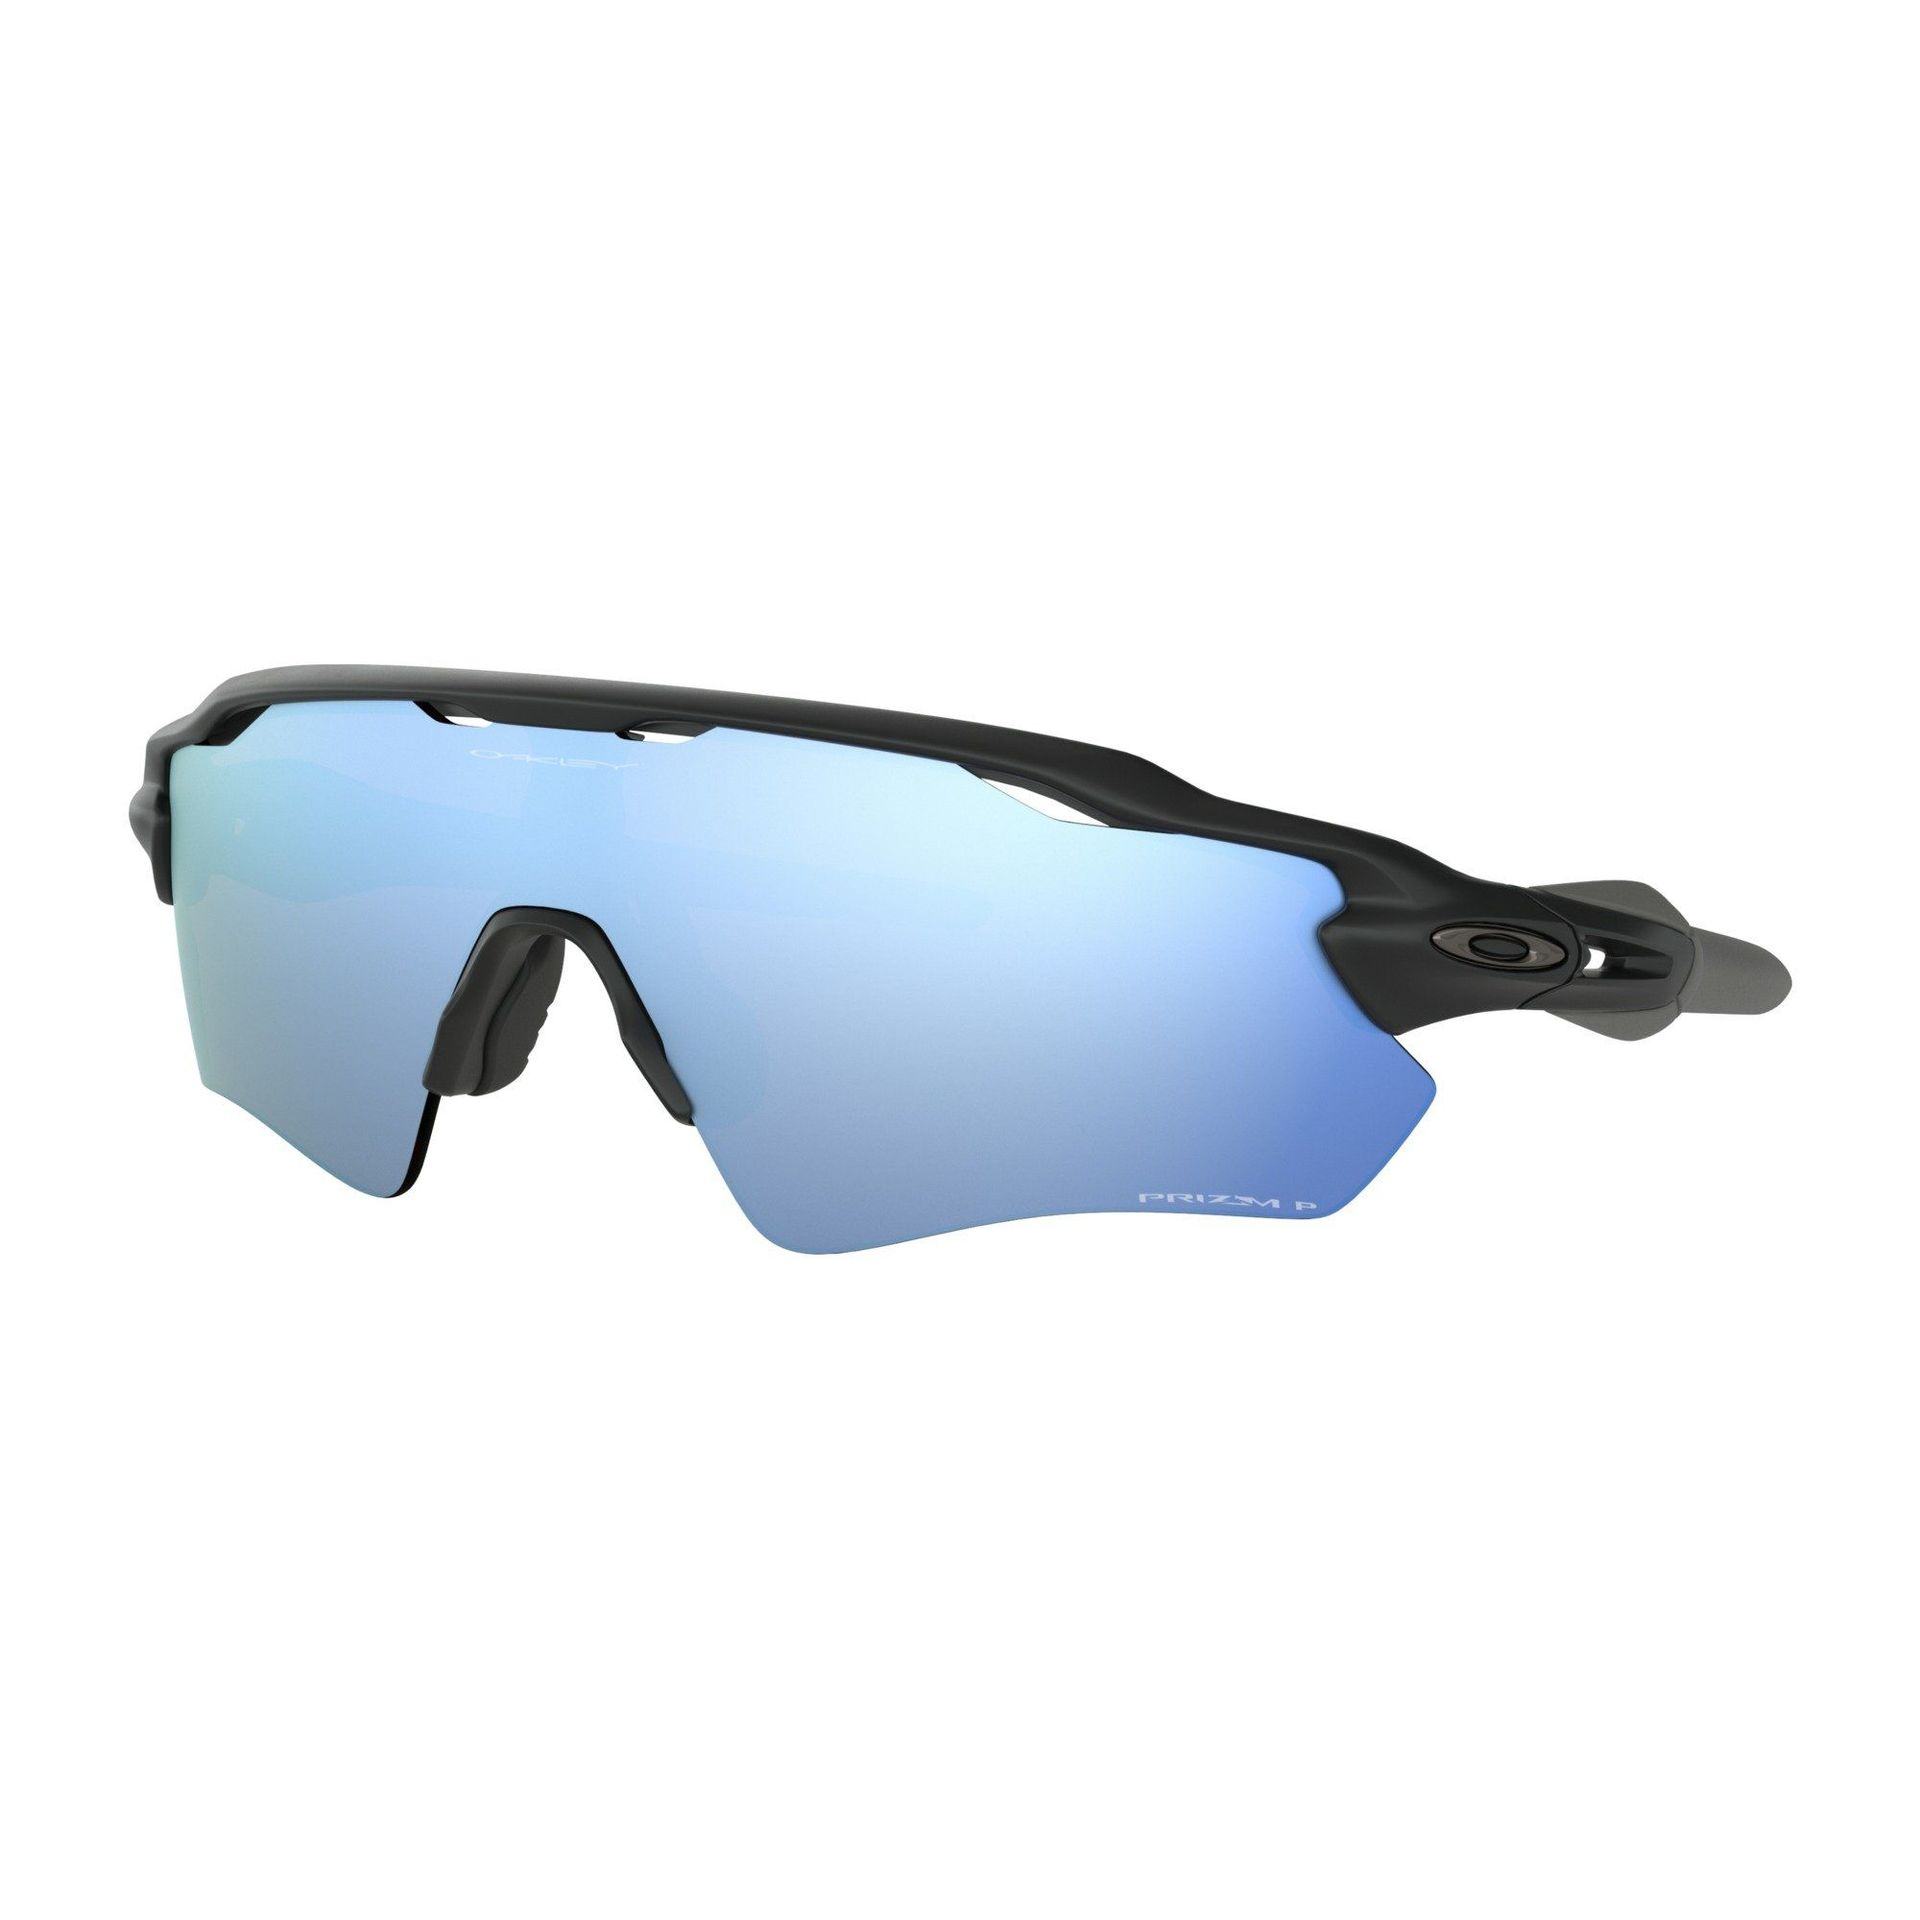 OKULARY OAKLEY RADAR EV PATH MATTE BLACK|PRIZM DEEP WATER POLARIZED 1